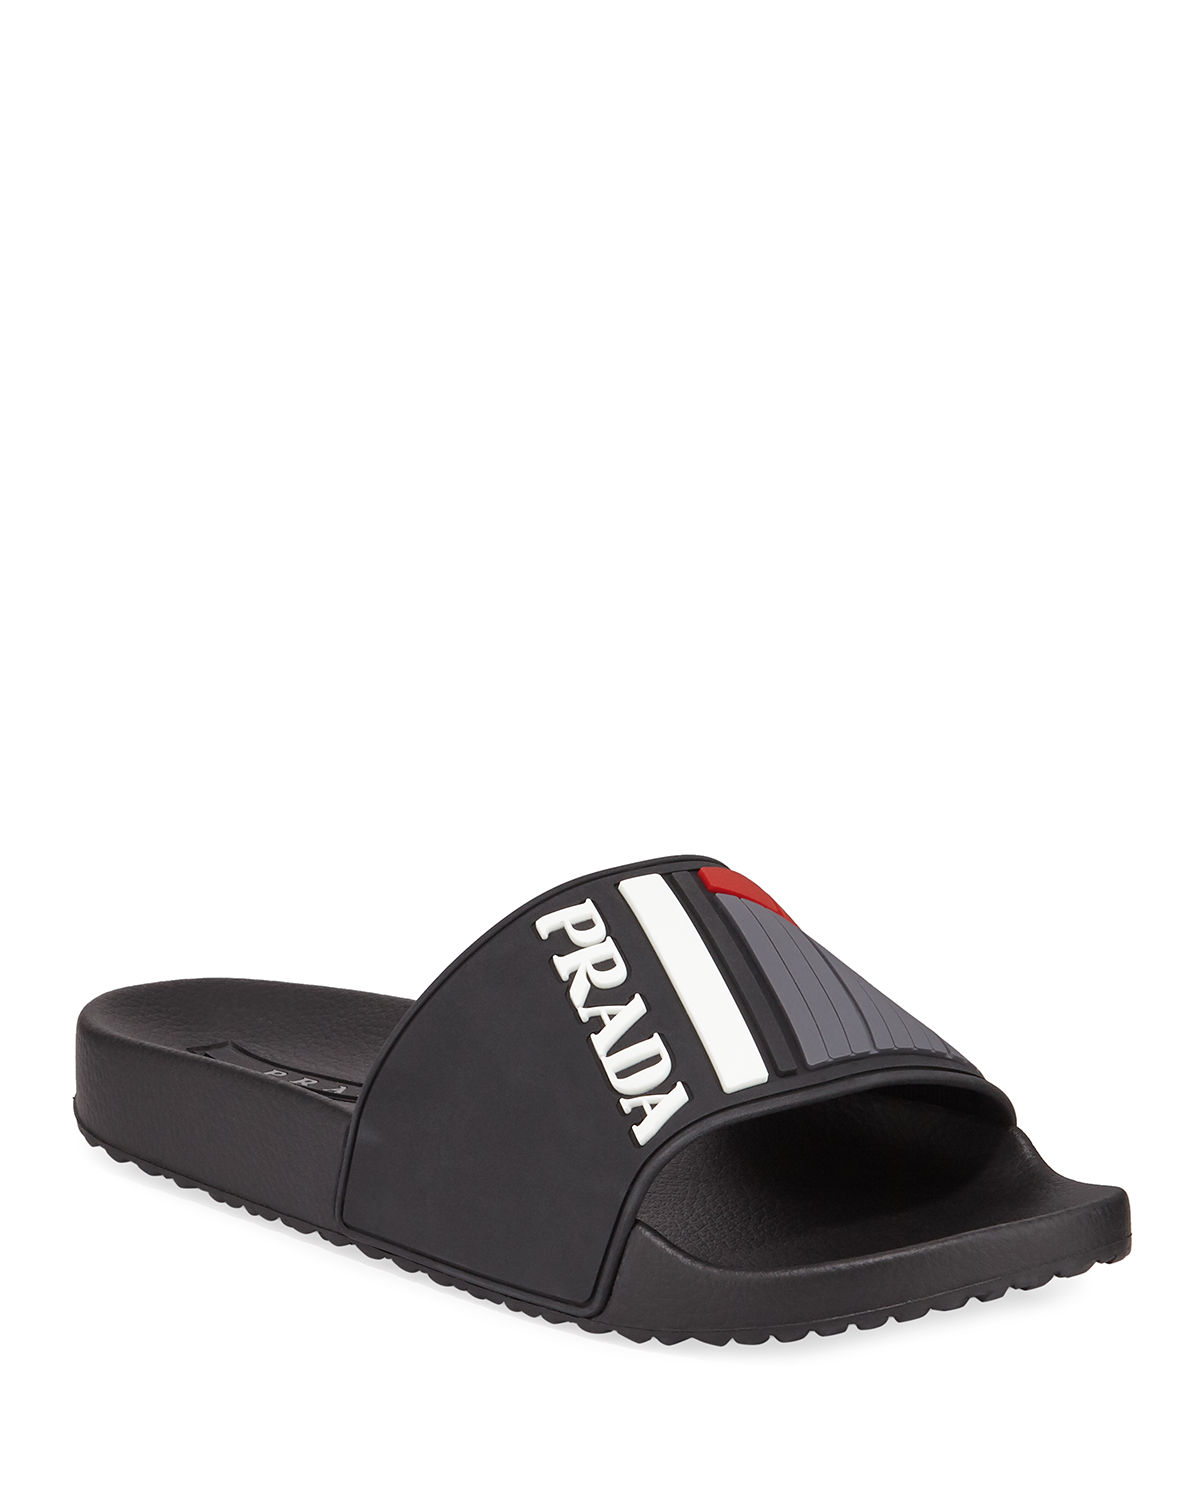 adf90e5a1ca0 Prada Men s Logo Rubber Slide Sandals